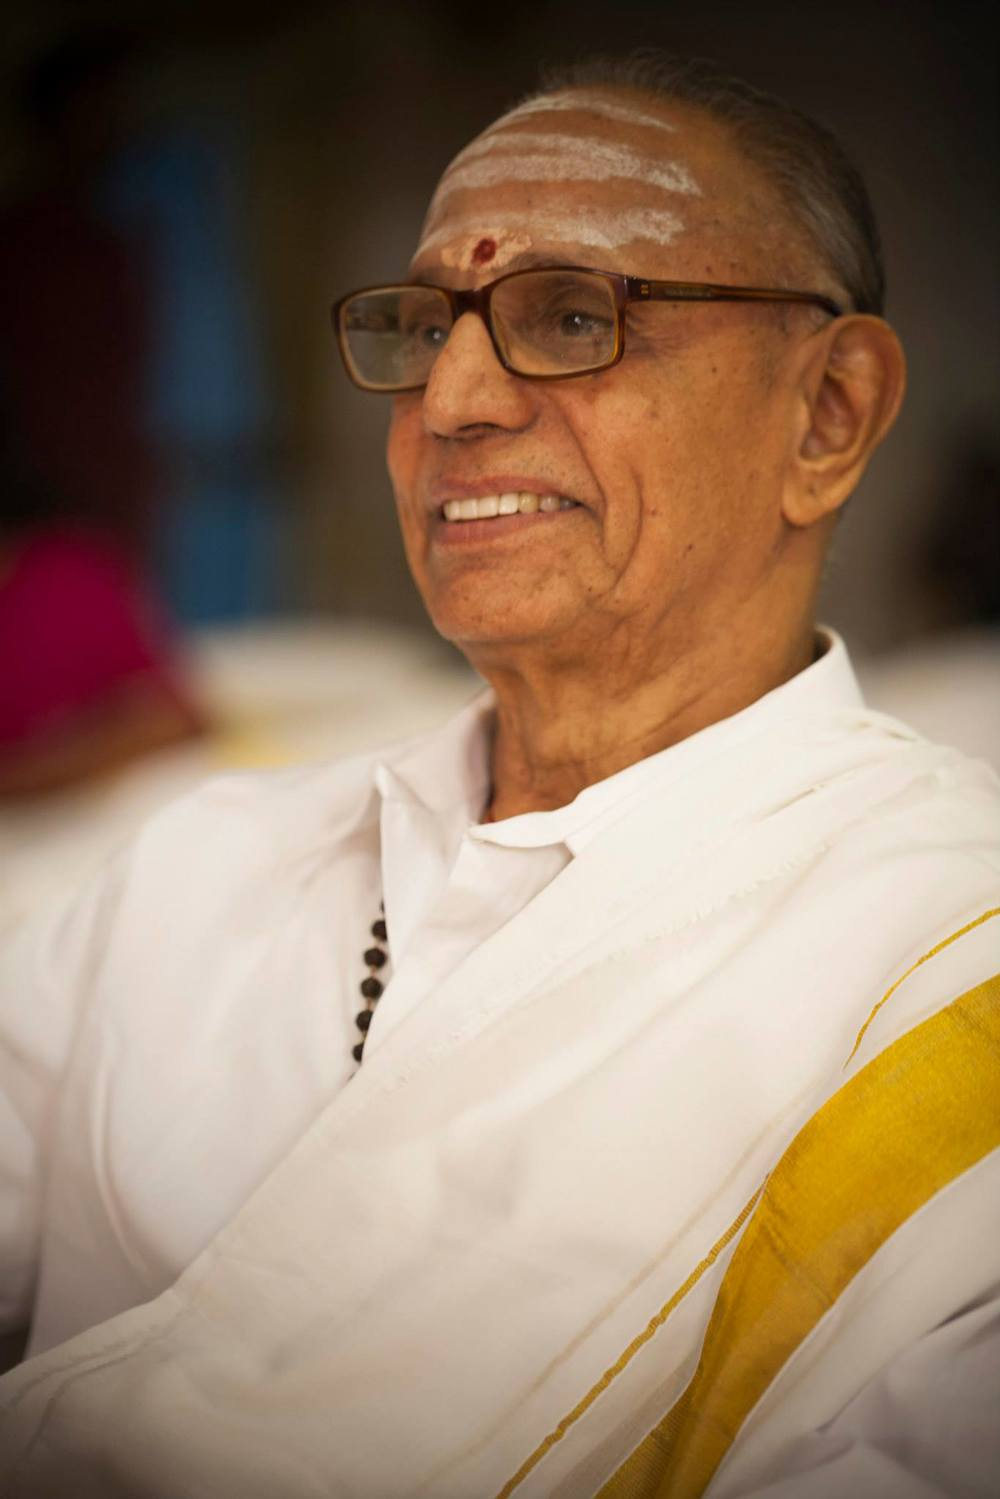 Sri K.R. Yegnarathnam. Photo by PV Subramaniam, 2013.